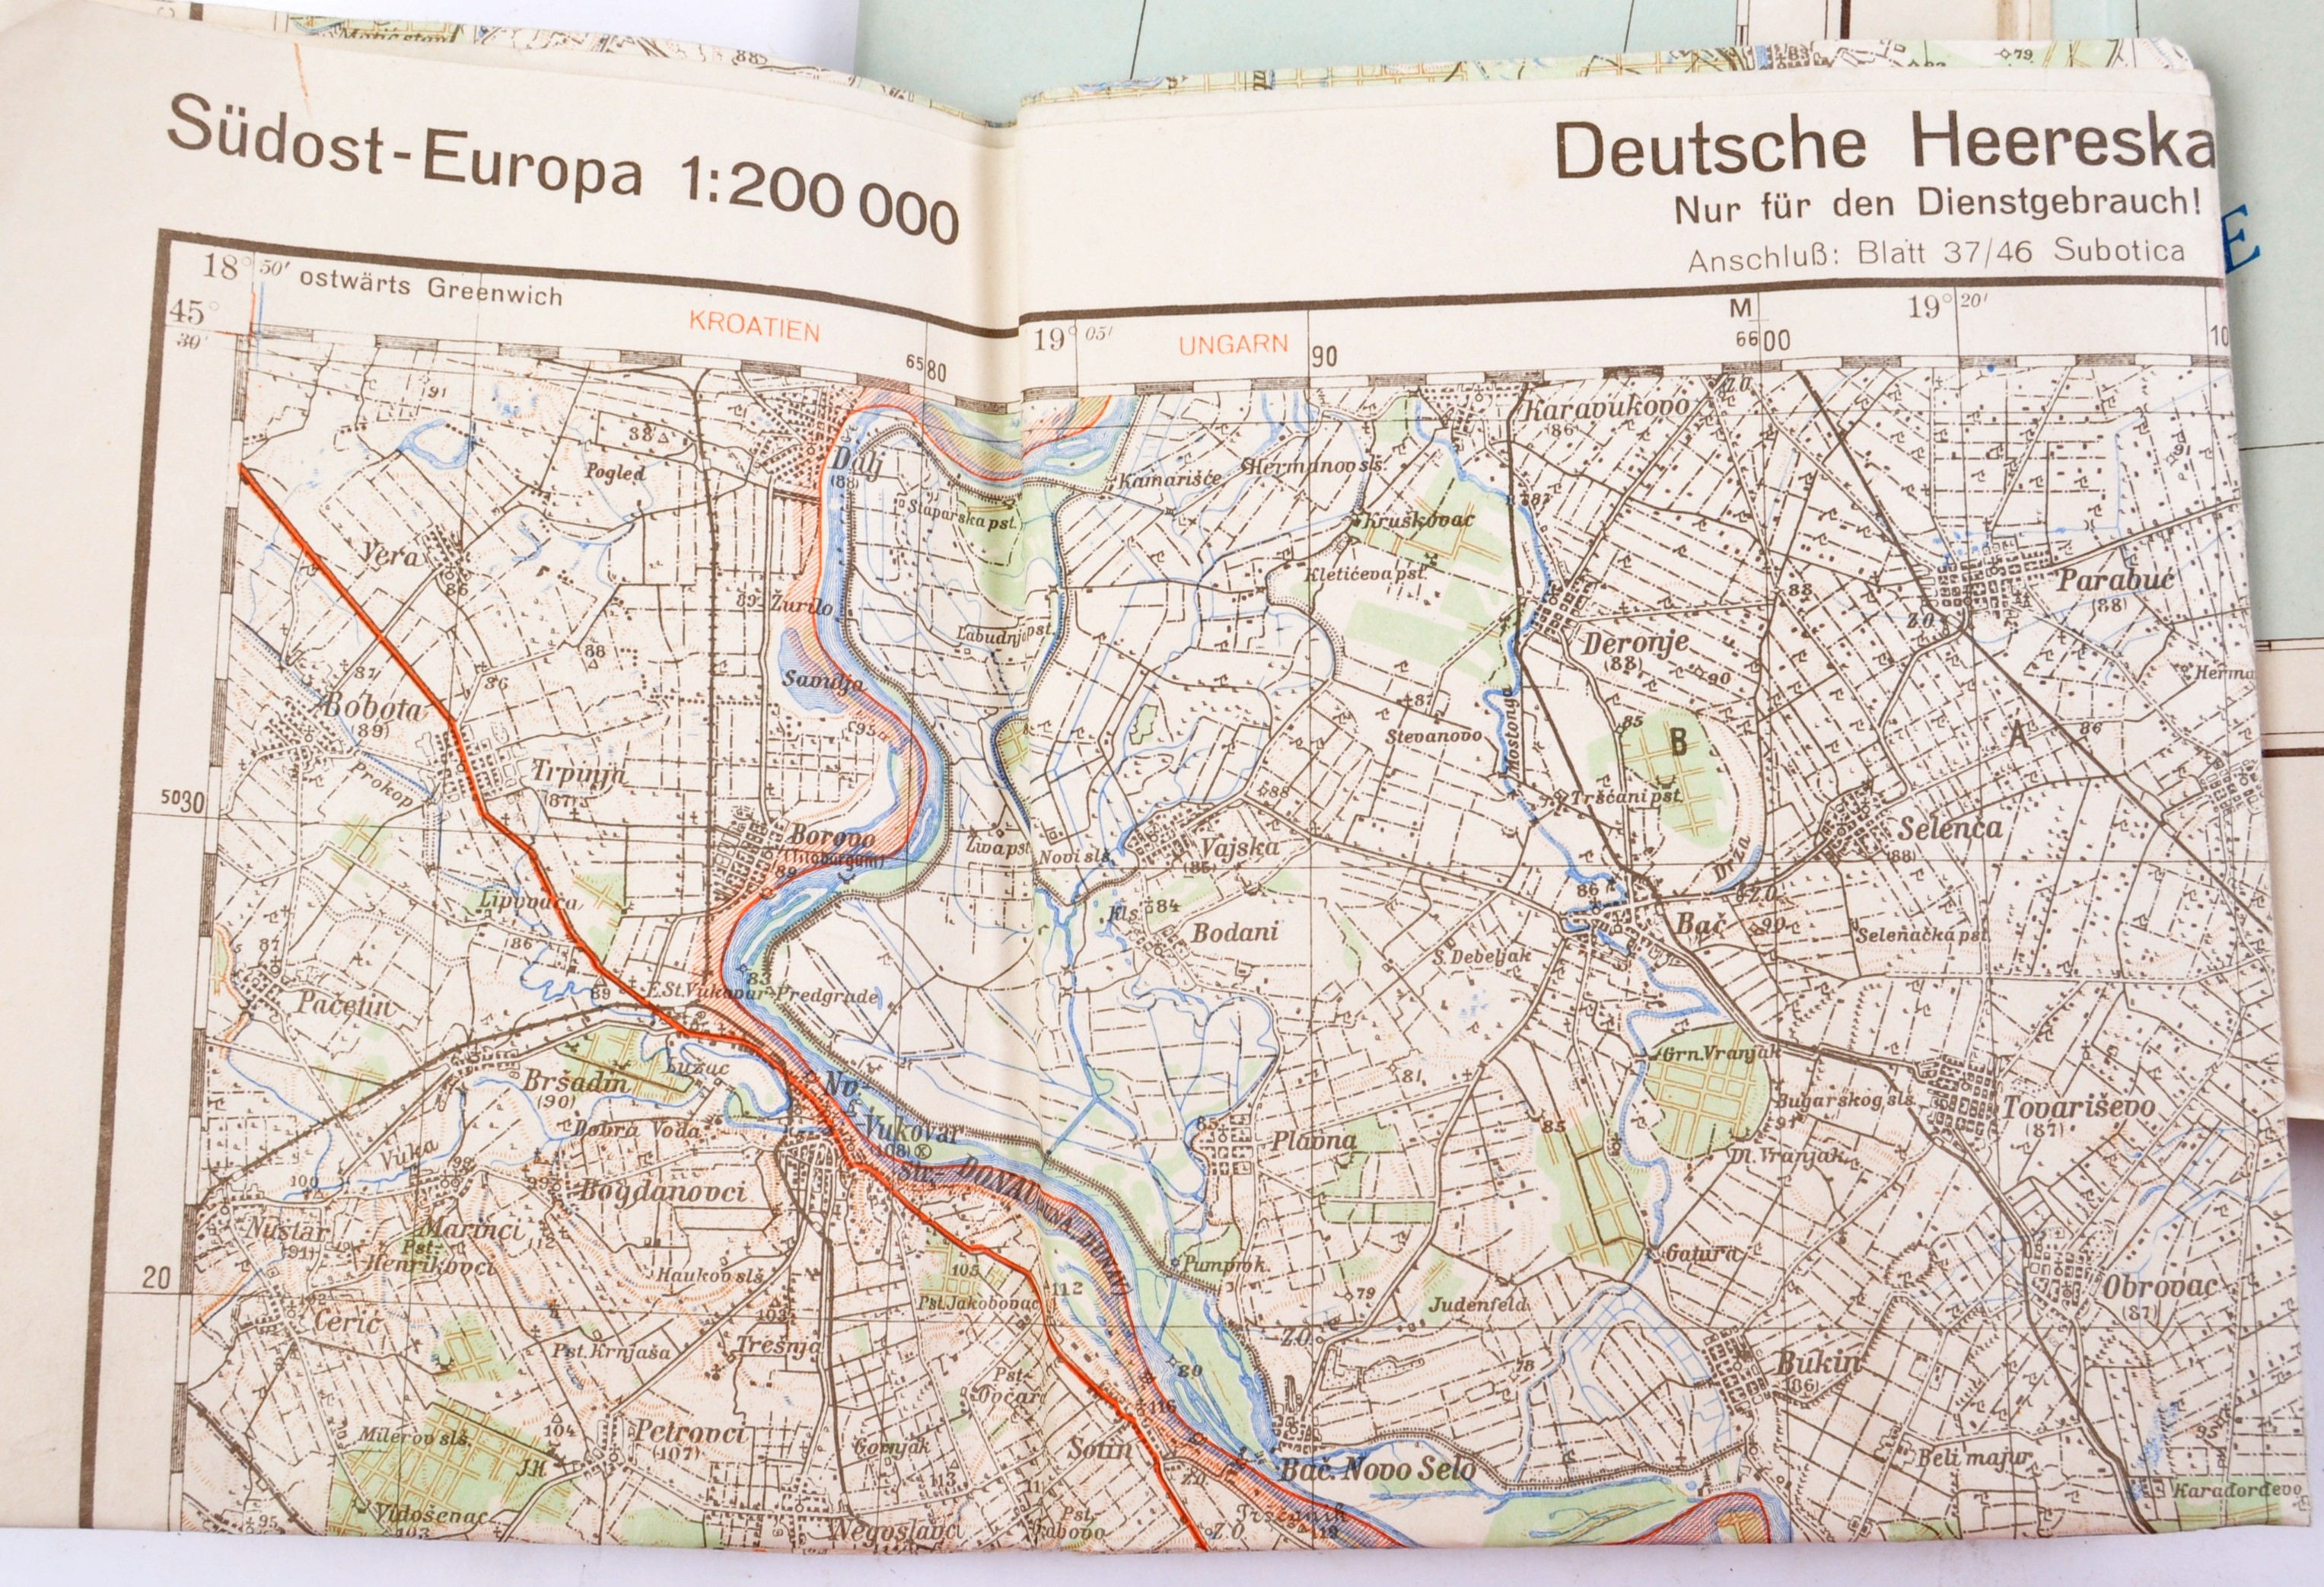 COLLECTION OF X6 ASSORTED WWII GERMAN ARMY MAPS - Image 3 of 10